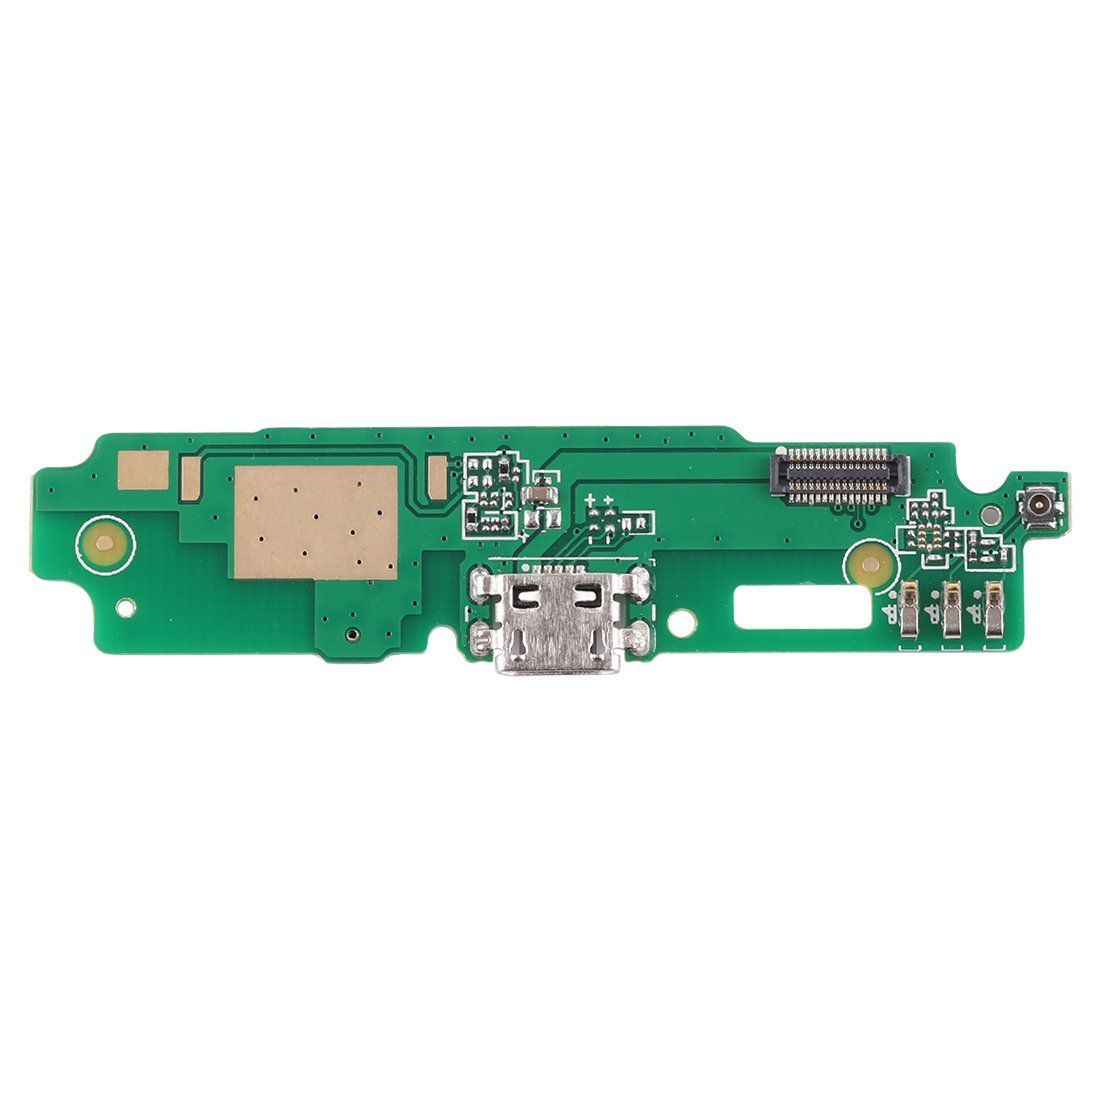 Pc Pet Multilayer Circuit Board With 3m Adhesive Waterproof